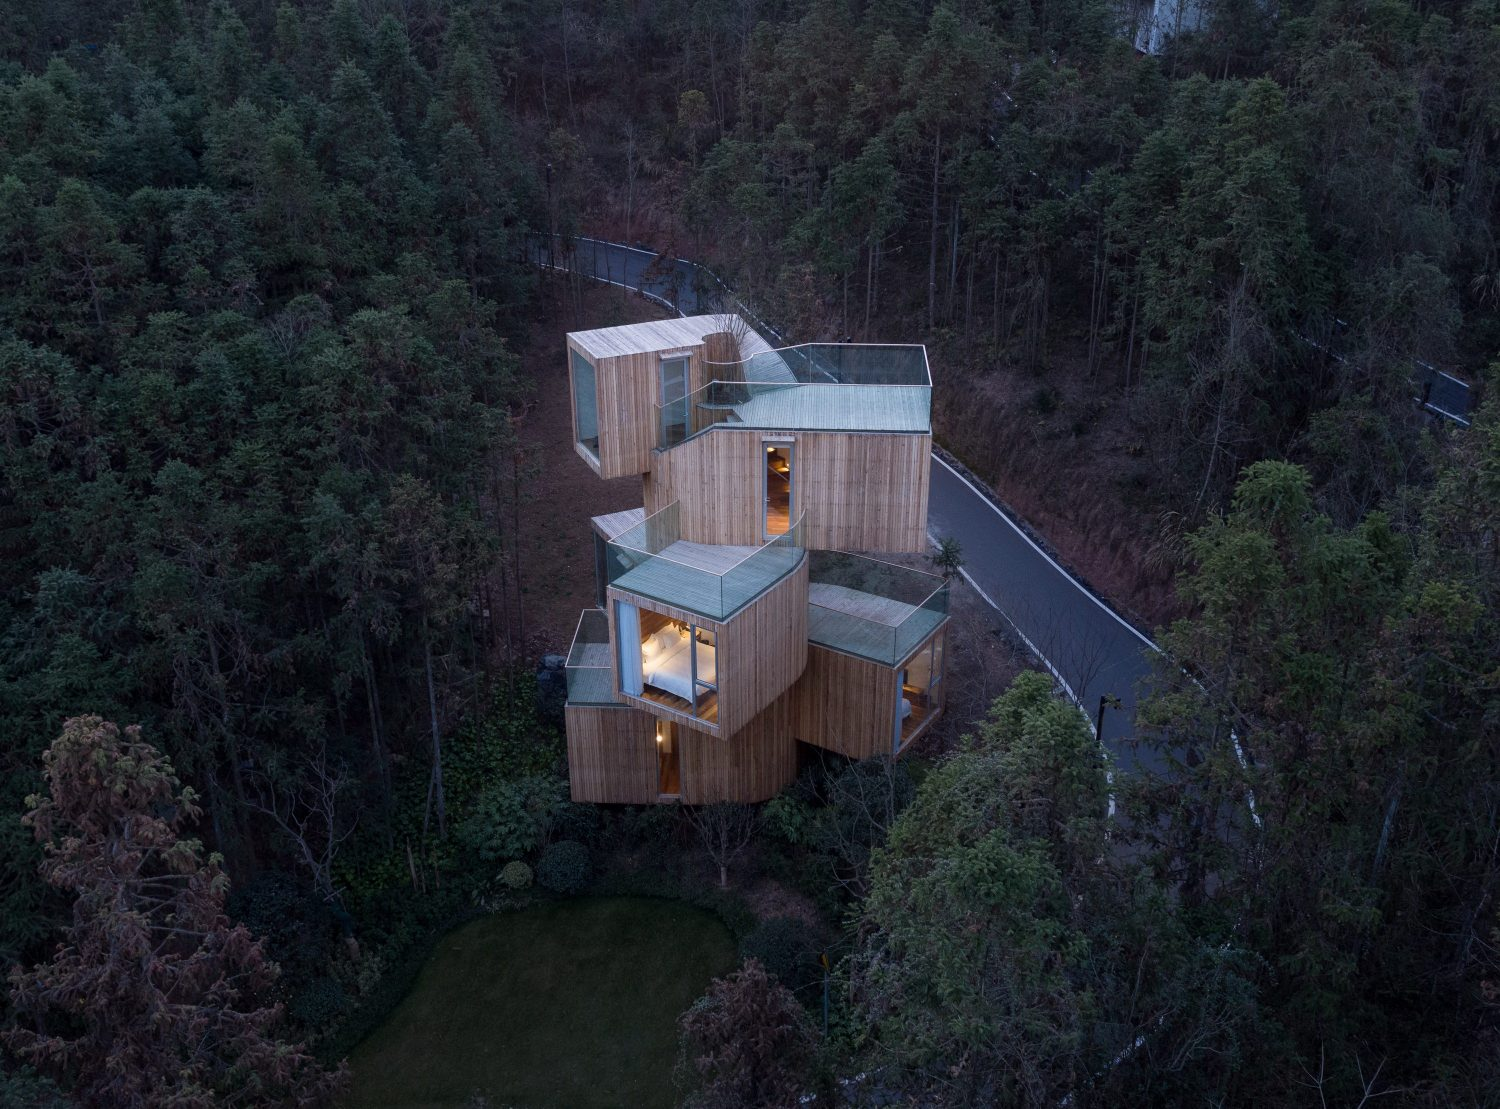 The Qiyun Mountain Tree House by Bengo Studio